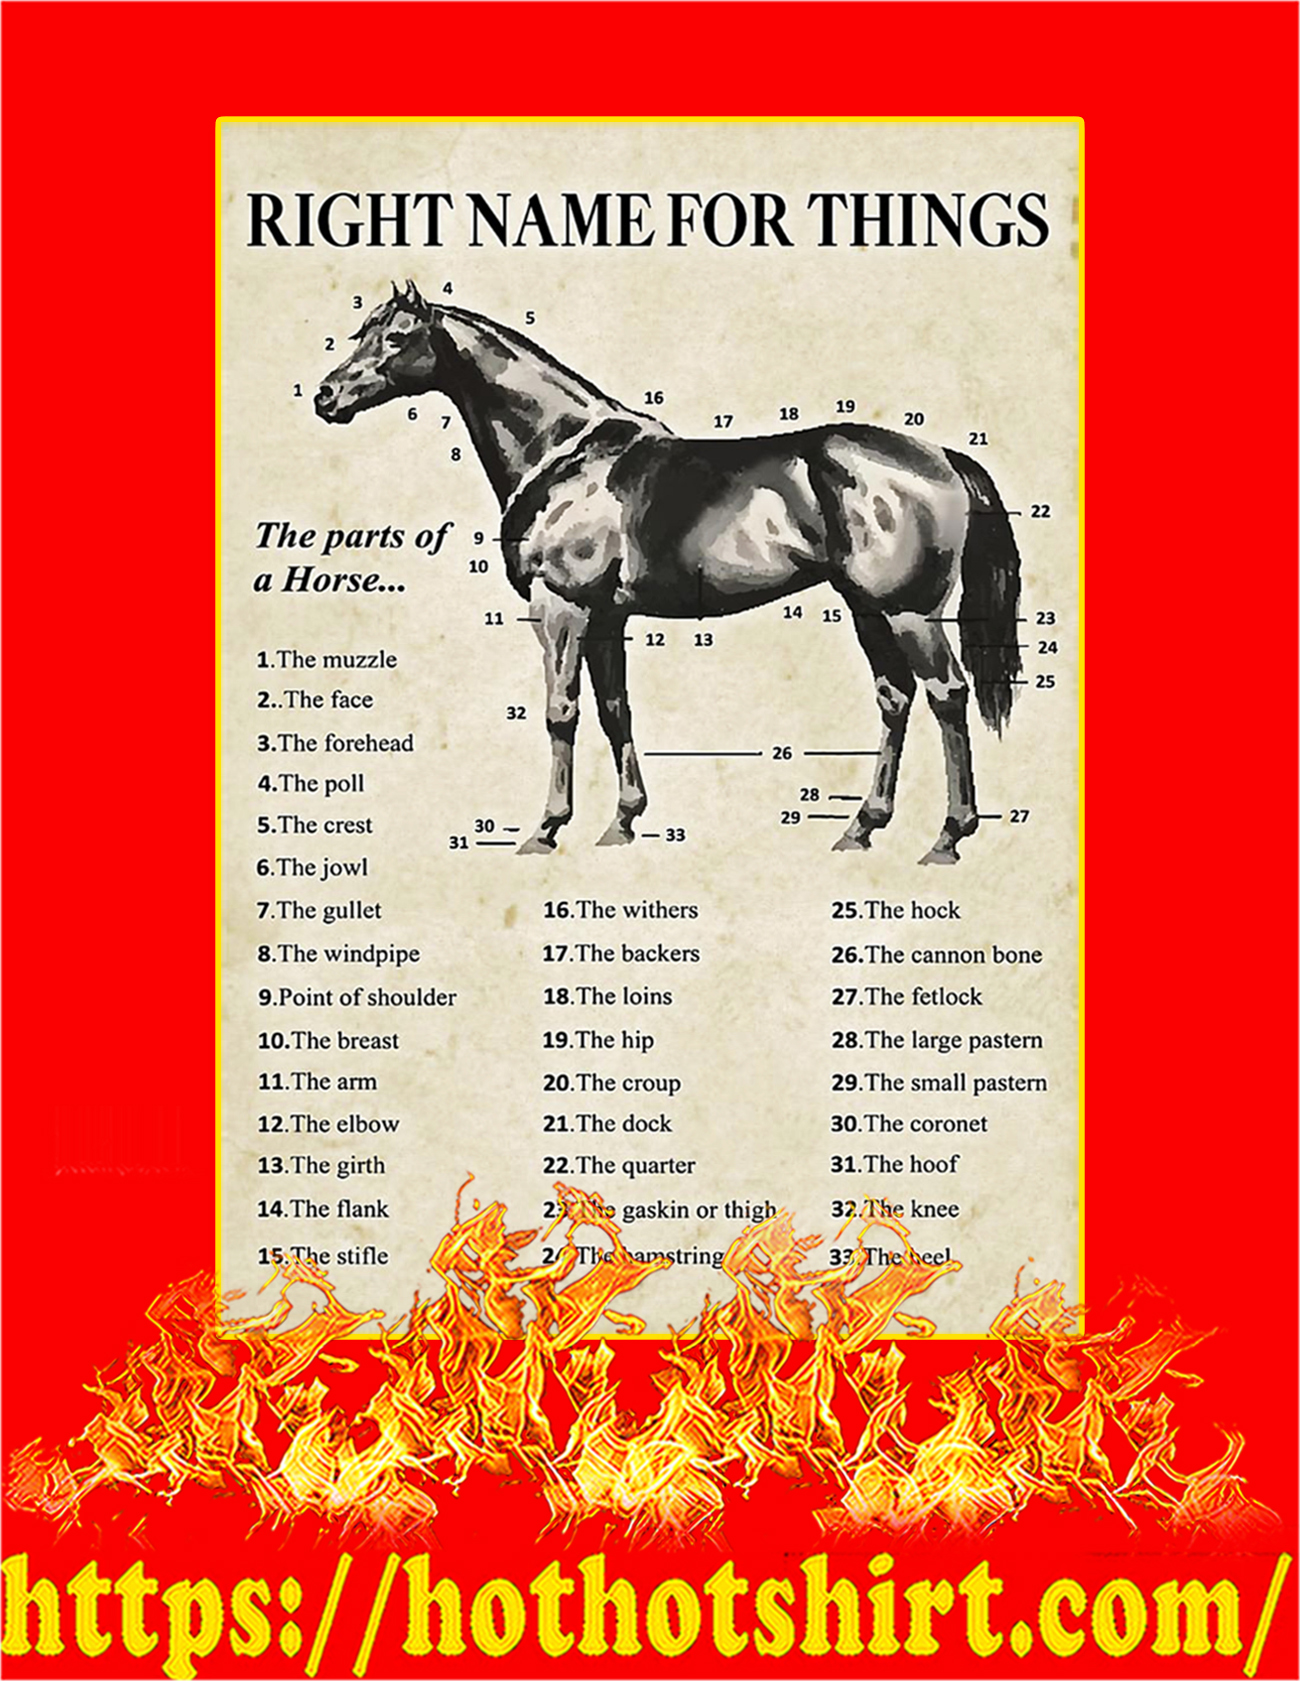 Right name for things horse poster - A4